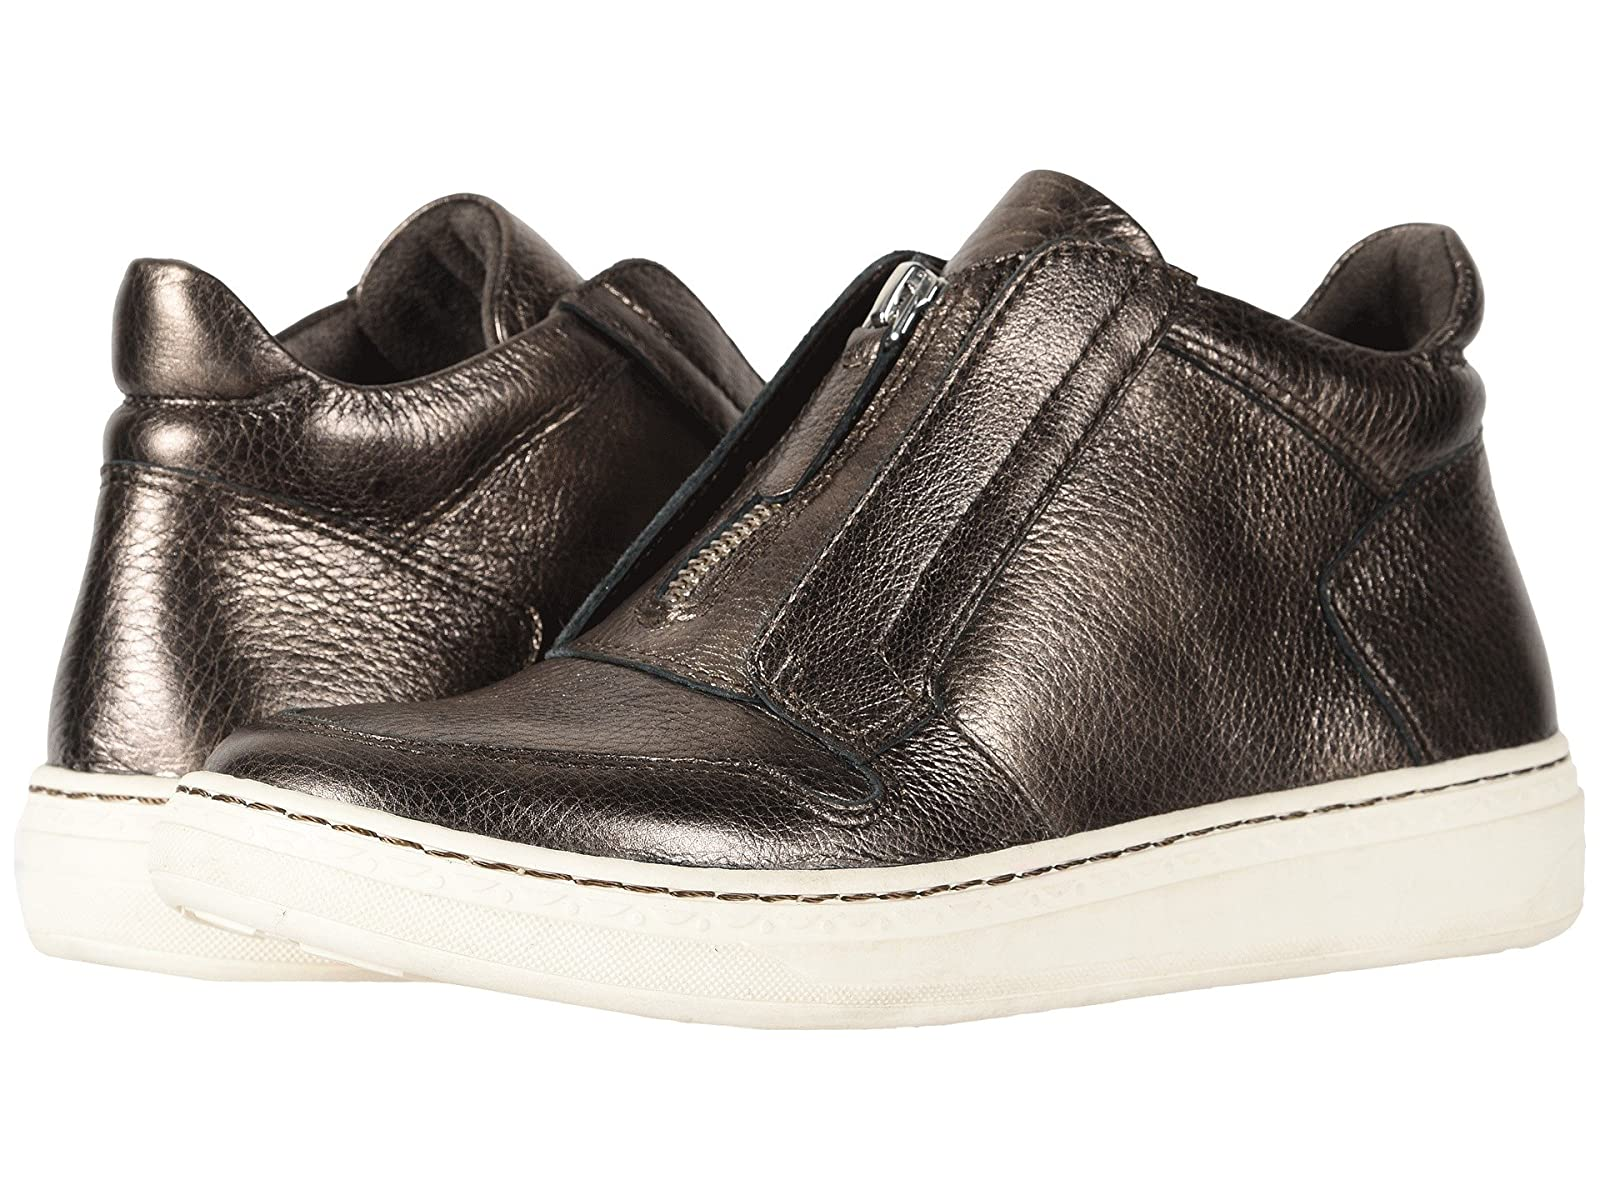 Earth ZaneAtmospheric grades have affordable shoes